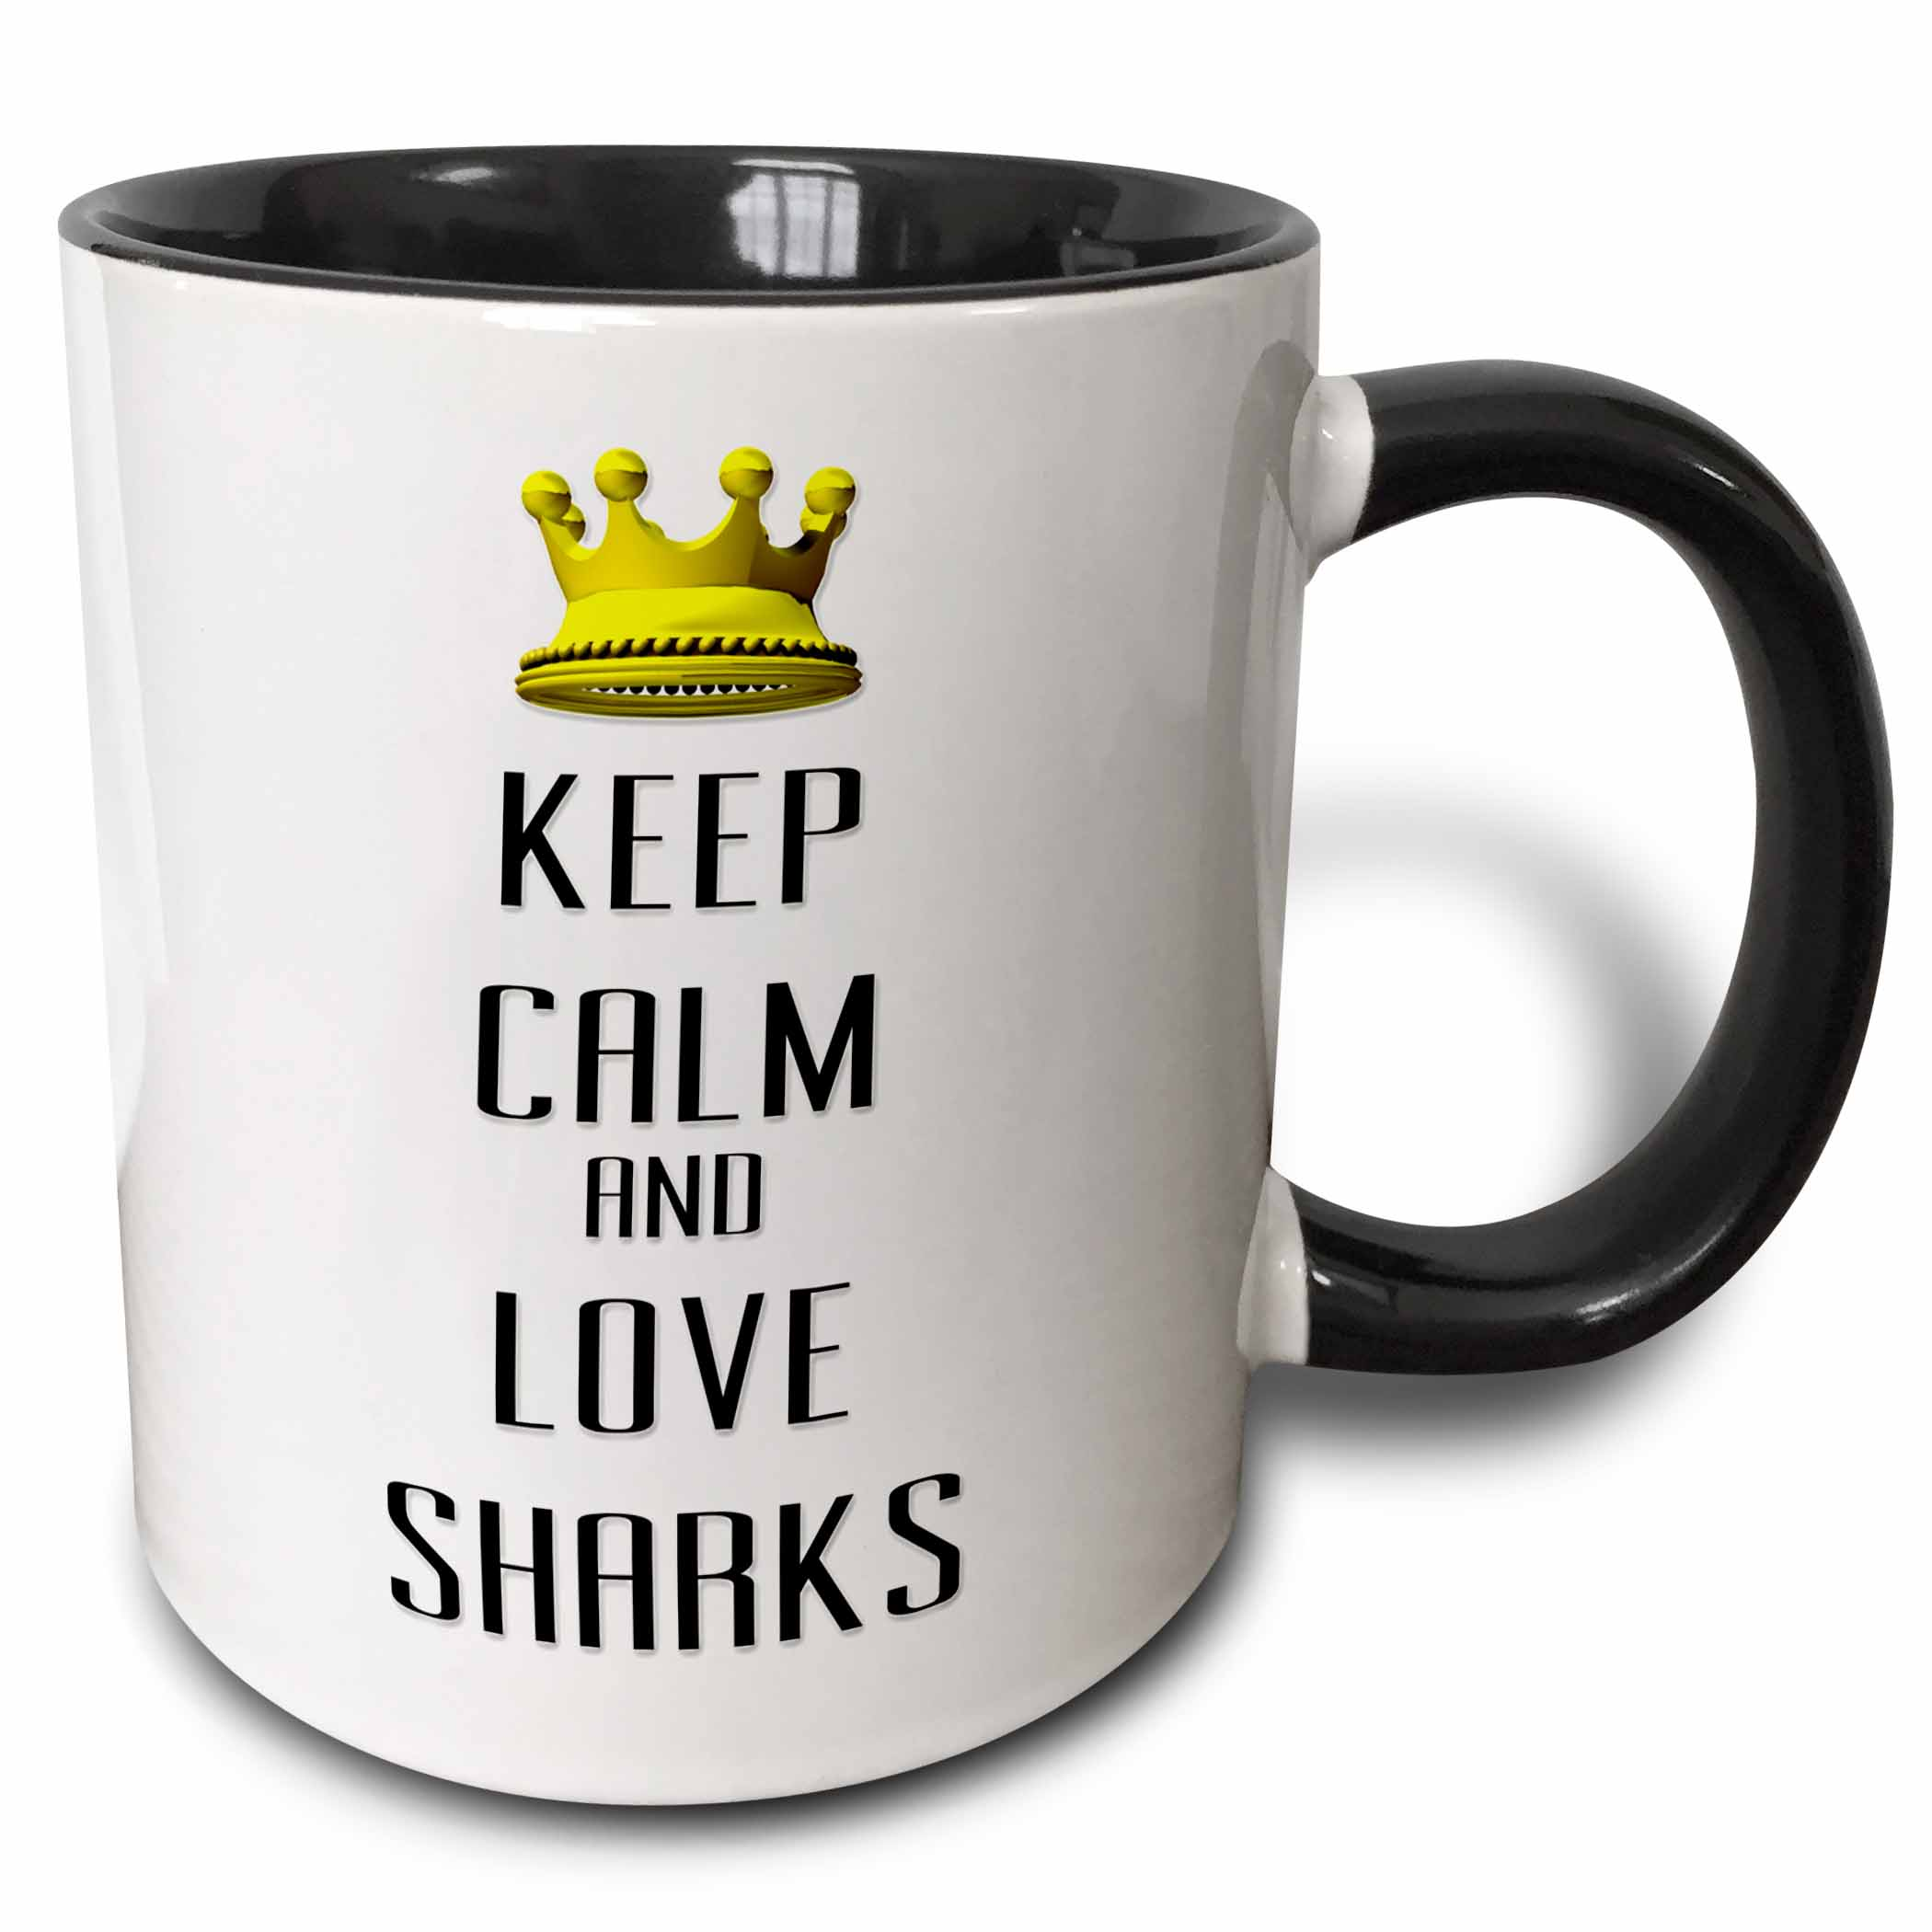 3dRose Gold Crown Keep Calm And Love Sharks - Two Tone Black Mug, 11-ounce